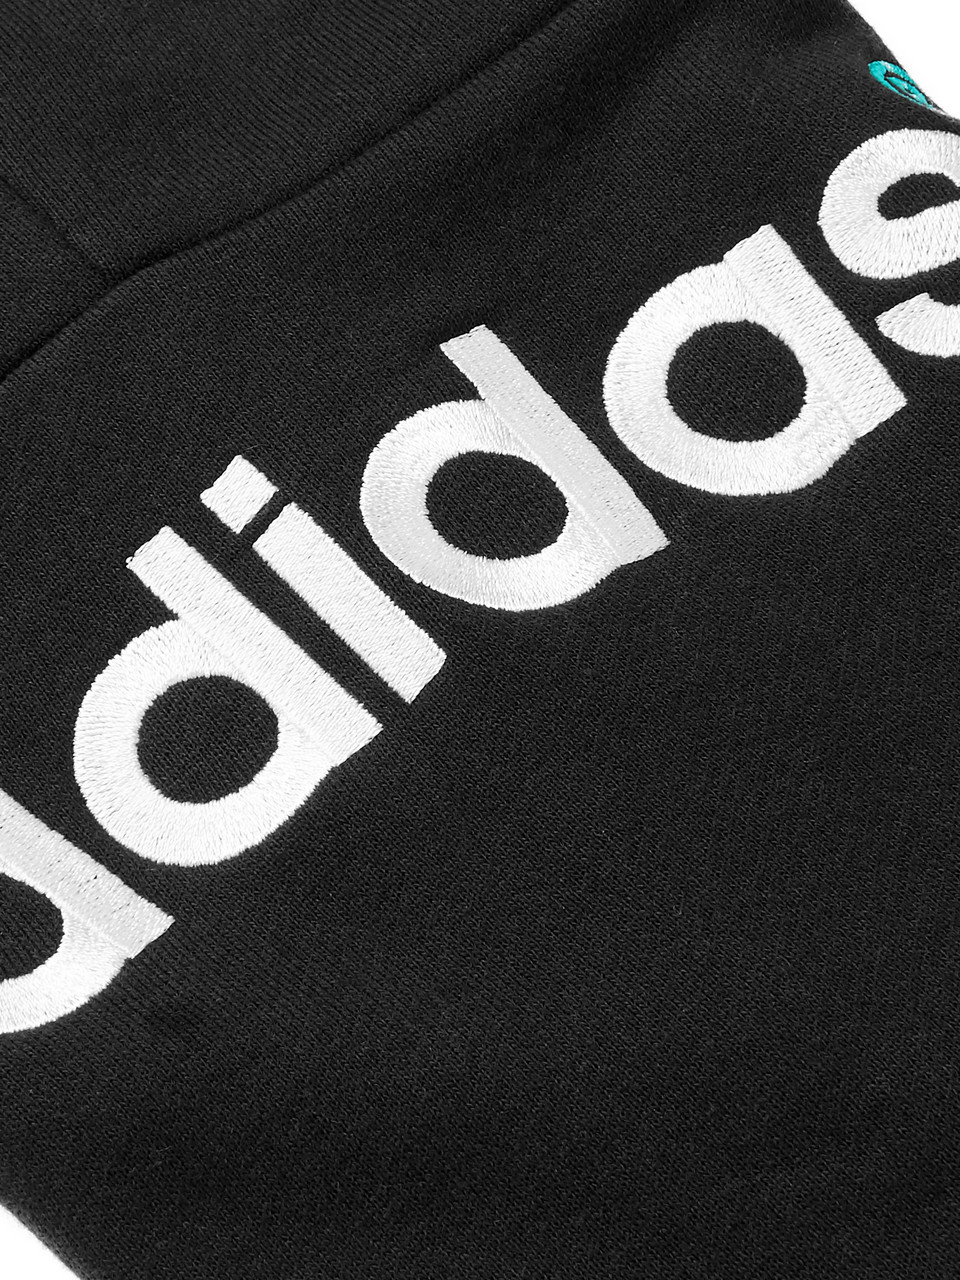 147fdb810 adidas Originals Arc Slim-Fit Logo-Embroidered Loopback Cotton-Jersey  Sweatpants